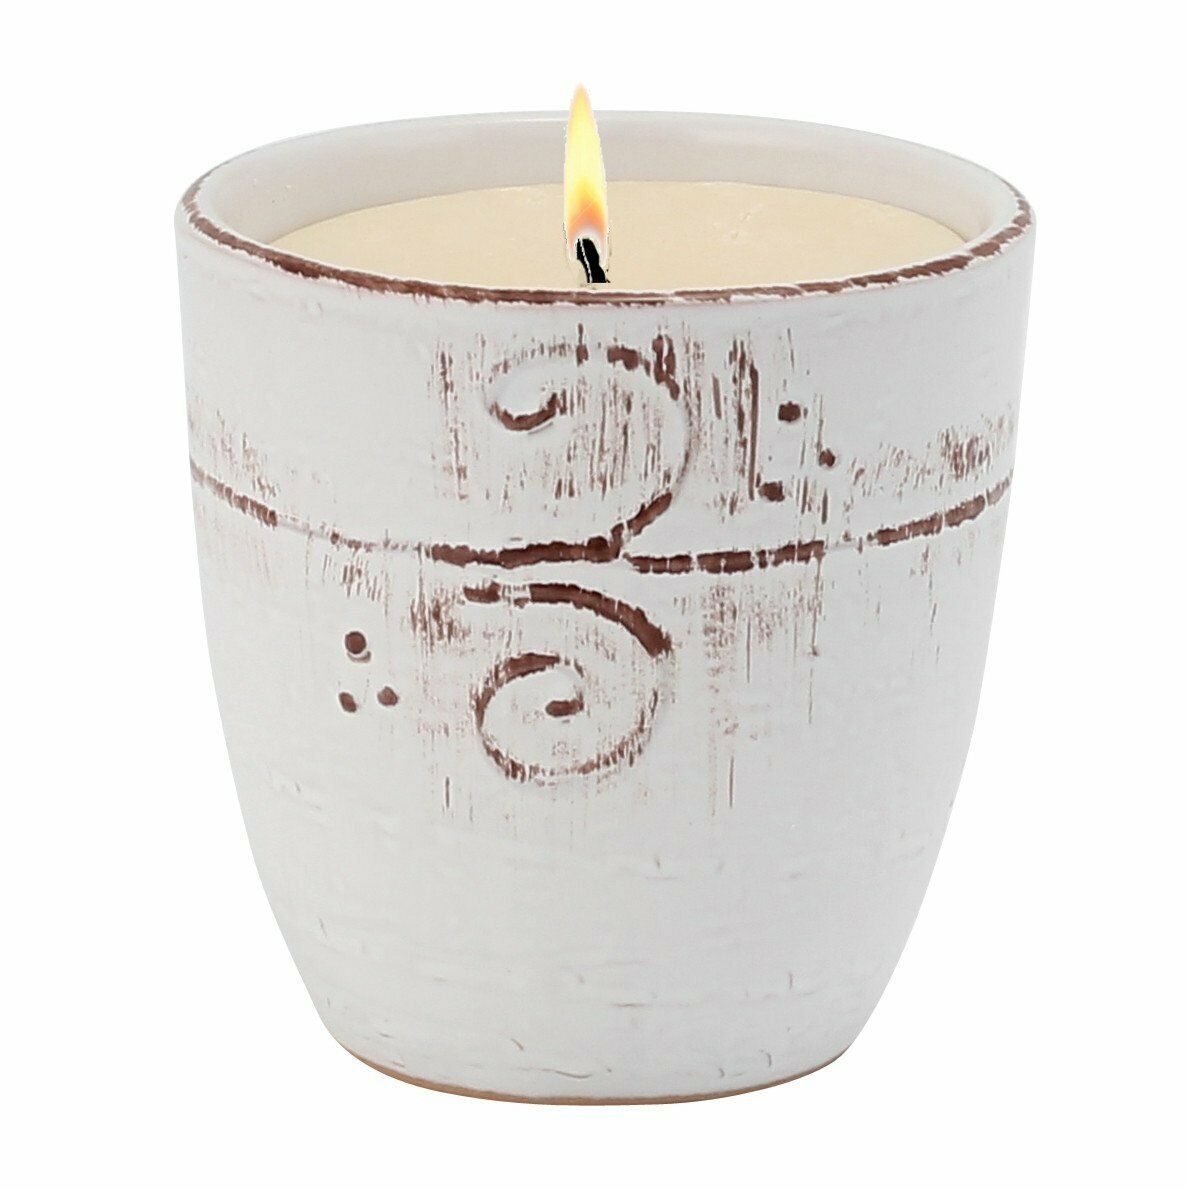 NATURA  Large Candle with bass relief tree branches motif hand finished in a whi